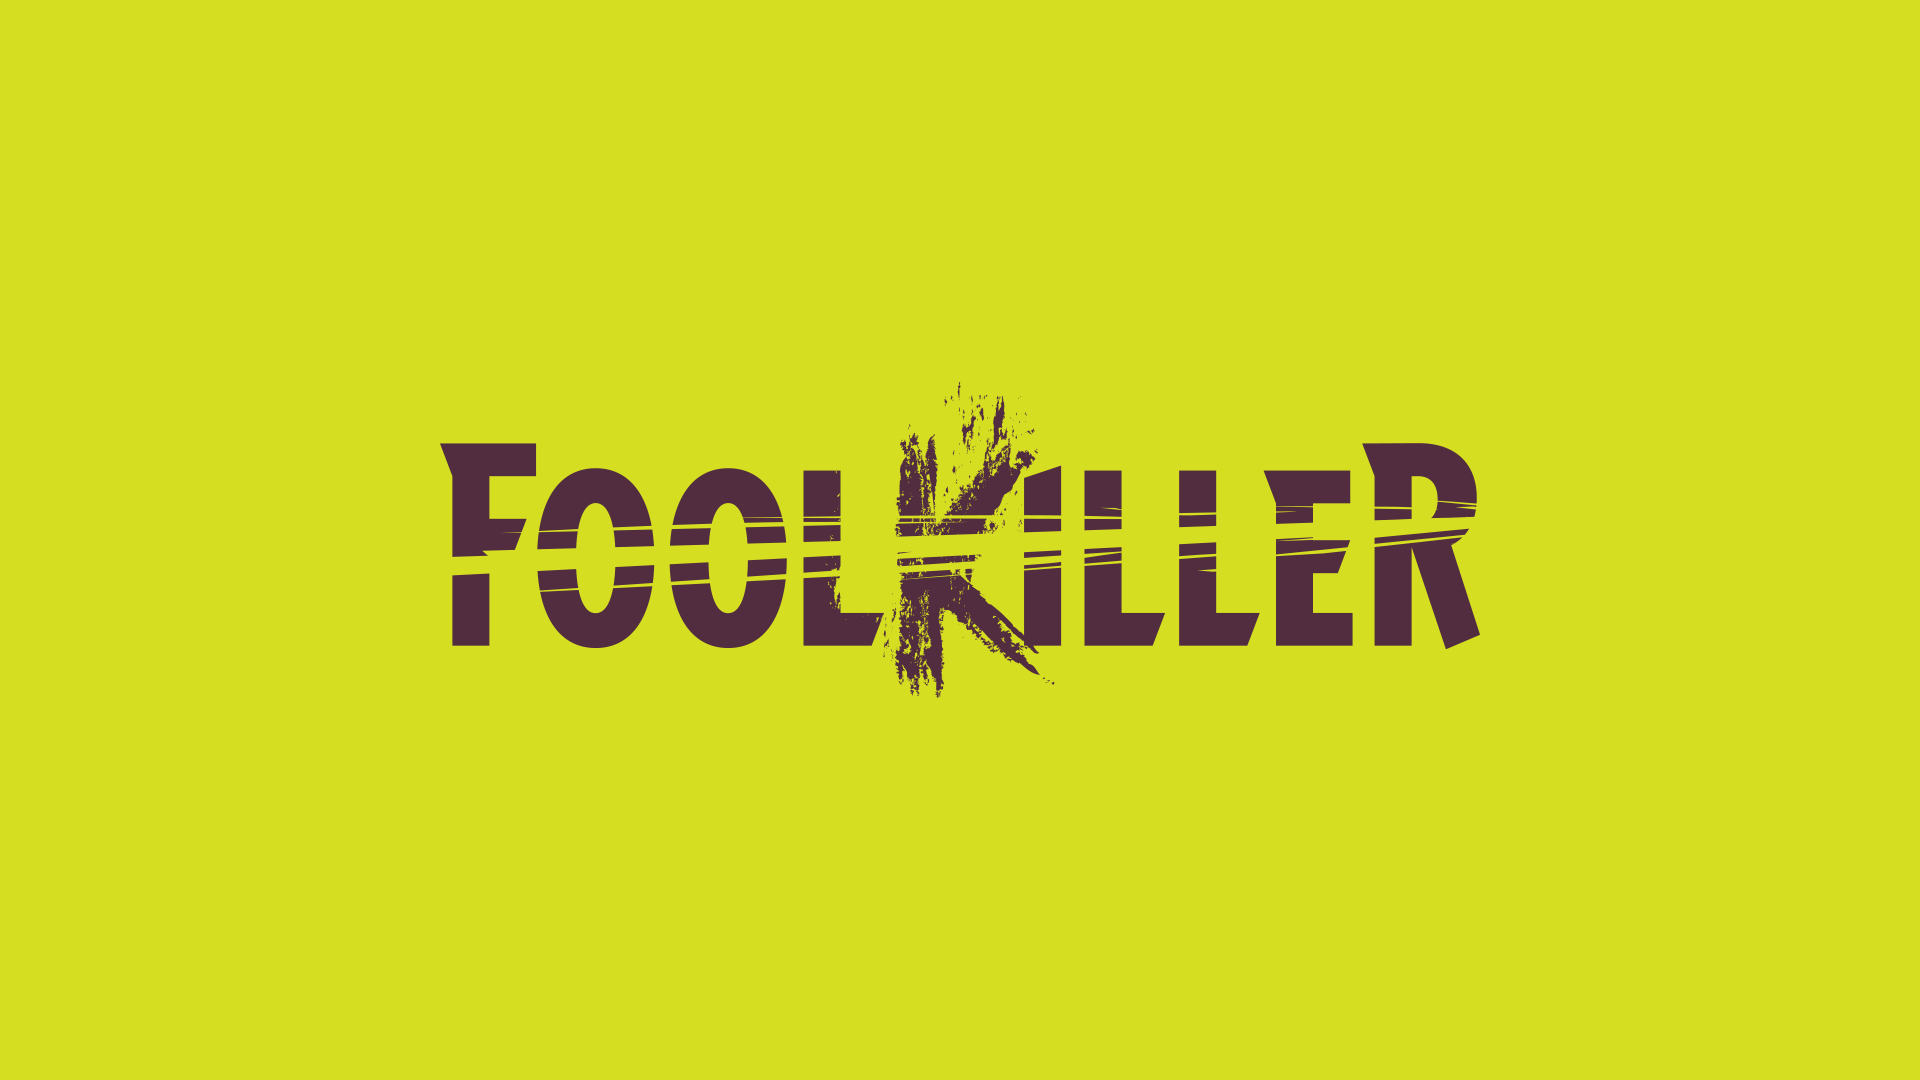 Foolkiller_1.png